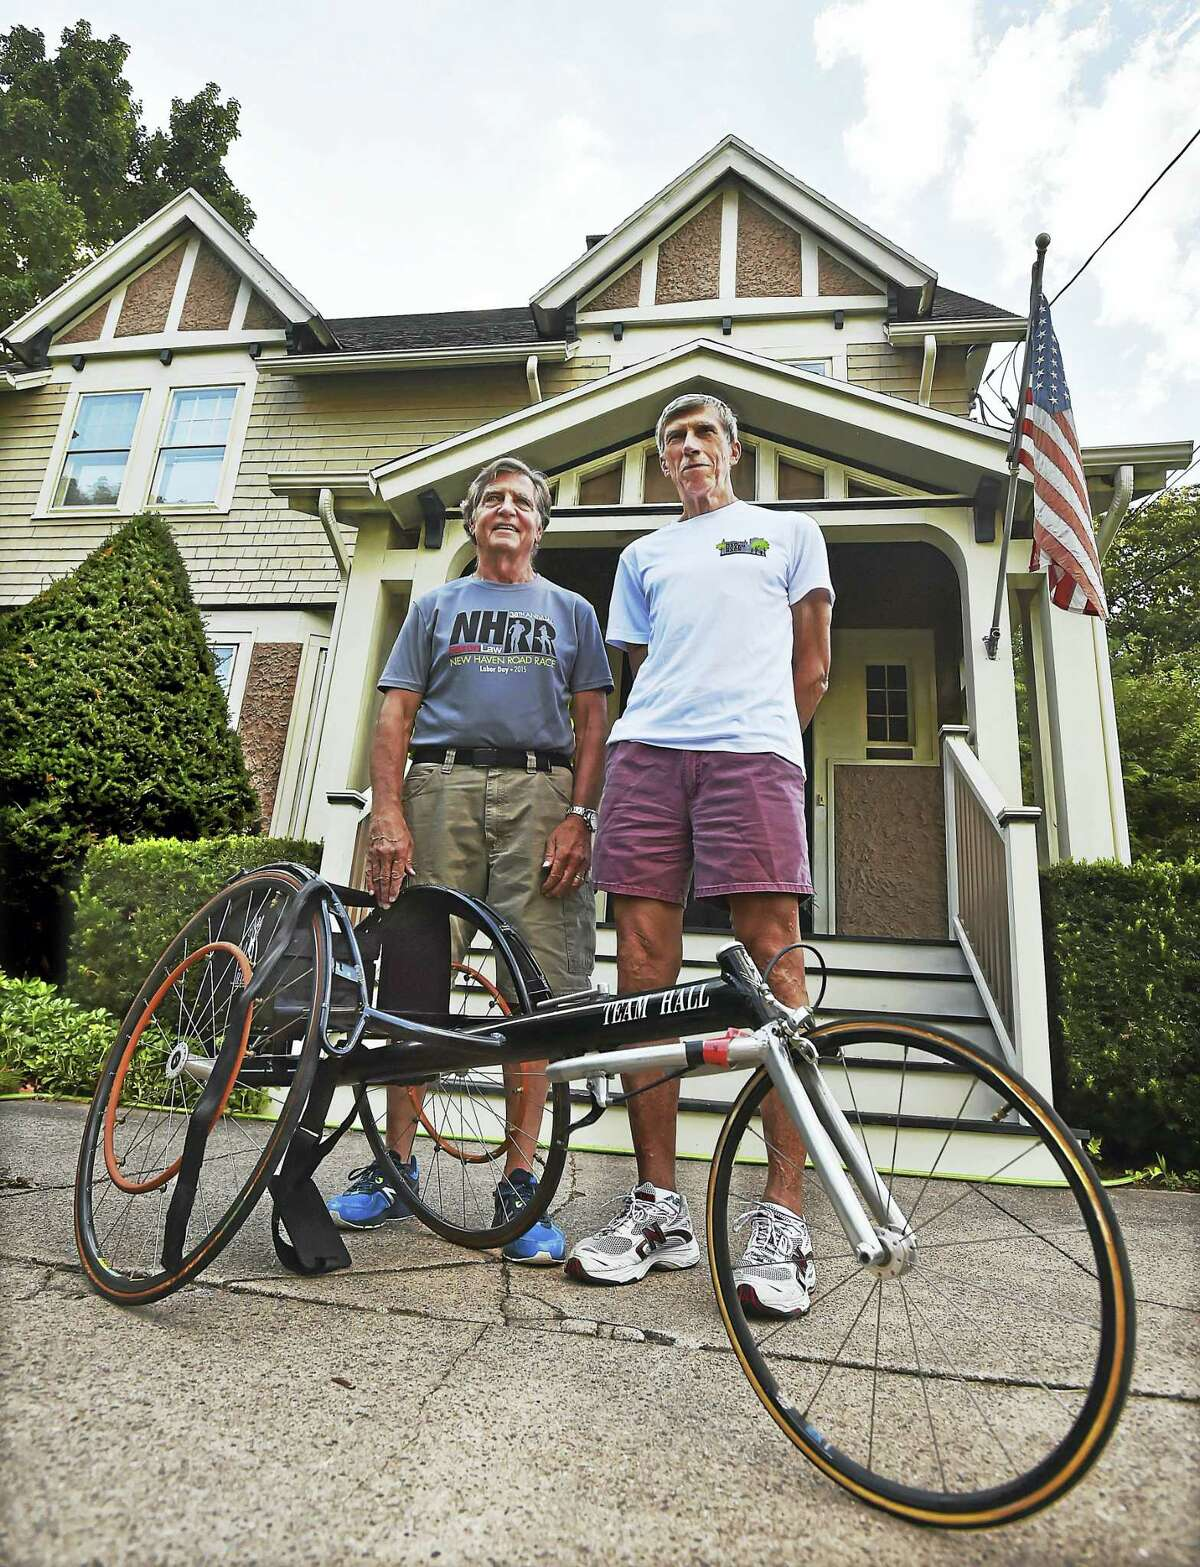 Peter Halsey, left, and Bill Schaeffer, photographed Tuesday, August 30, 2016 outside Halsey's home in New Haven. They are two of 12 runners who have participated every year in the Faxon Law New Haven 20K Road Race. The race, in its 39th year, is on Labor Day, September 5. During two of the races Halsey used this racing wheelchair because he was injured.